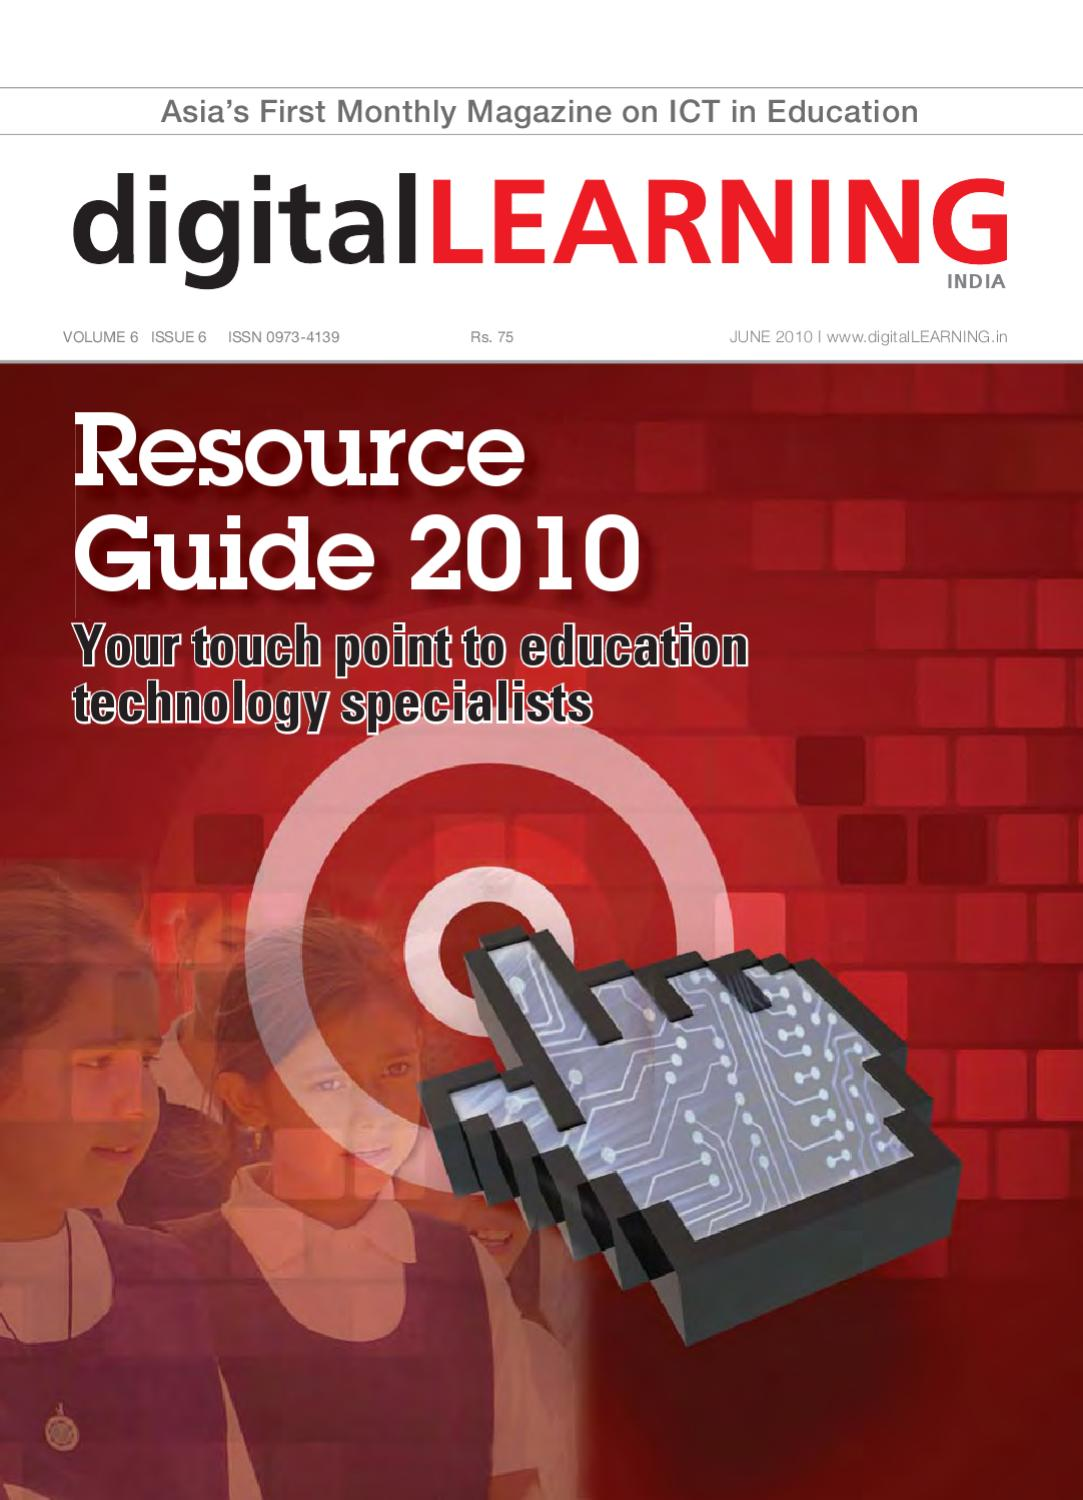 ResourceGuide 2010 : June 2010 by digital LEARNING Magazine